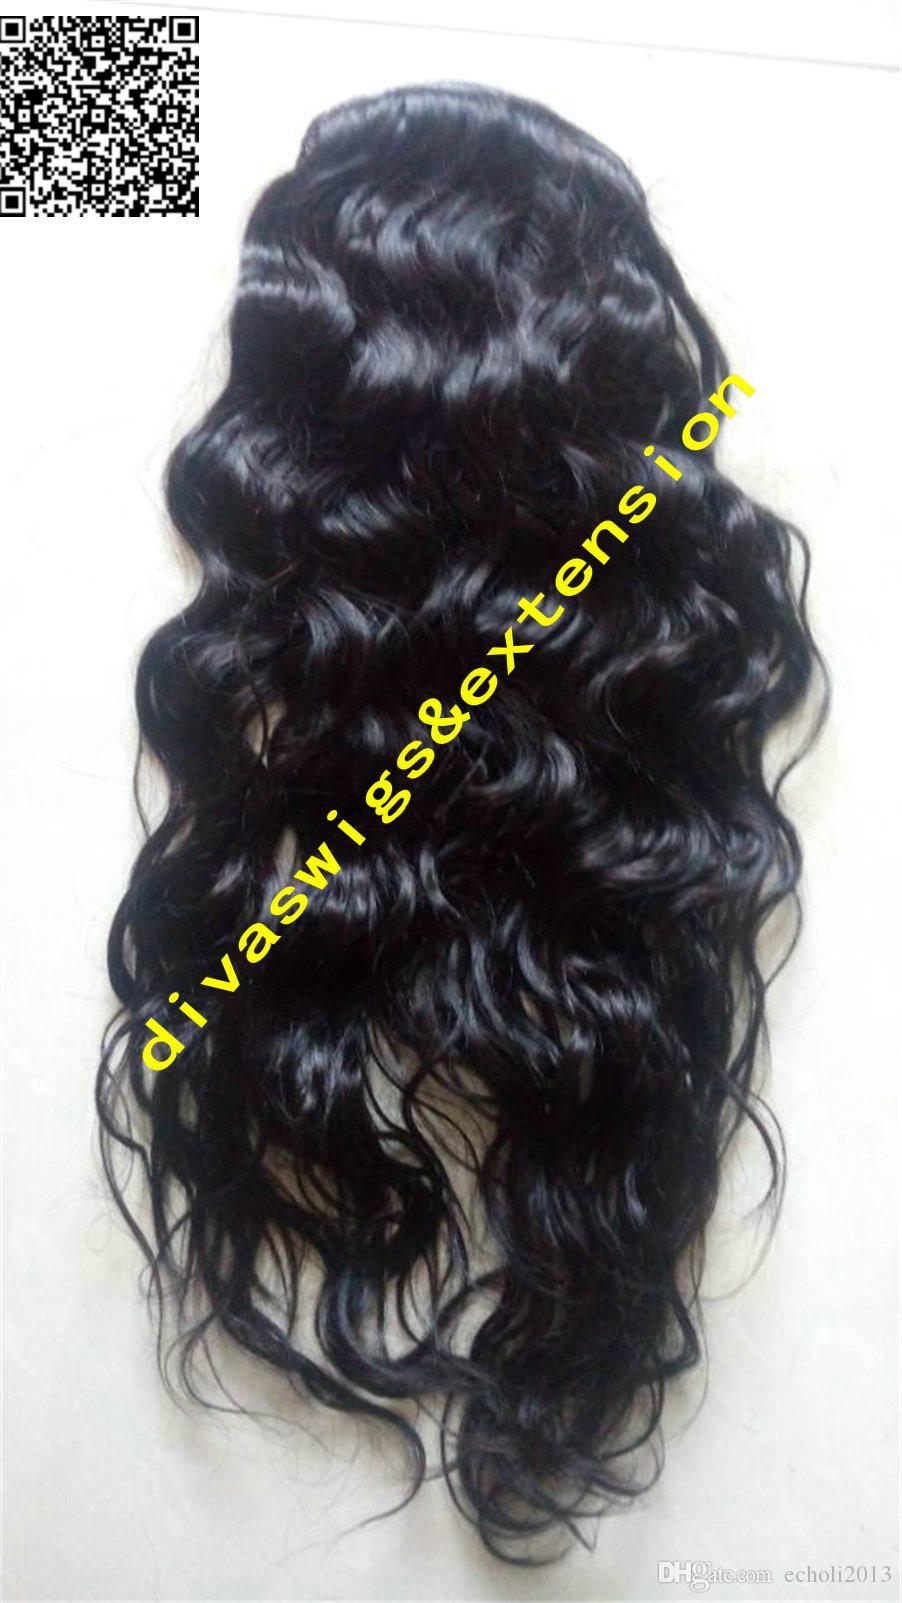 New Arrival Human Hair Ponytail Clip On Loose Wave Brown Brazilian Virgin Hair natural wavy Pony tail Hair Extensions #2 dark brown